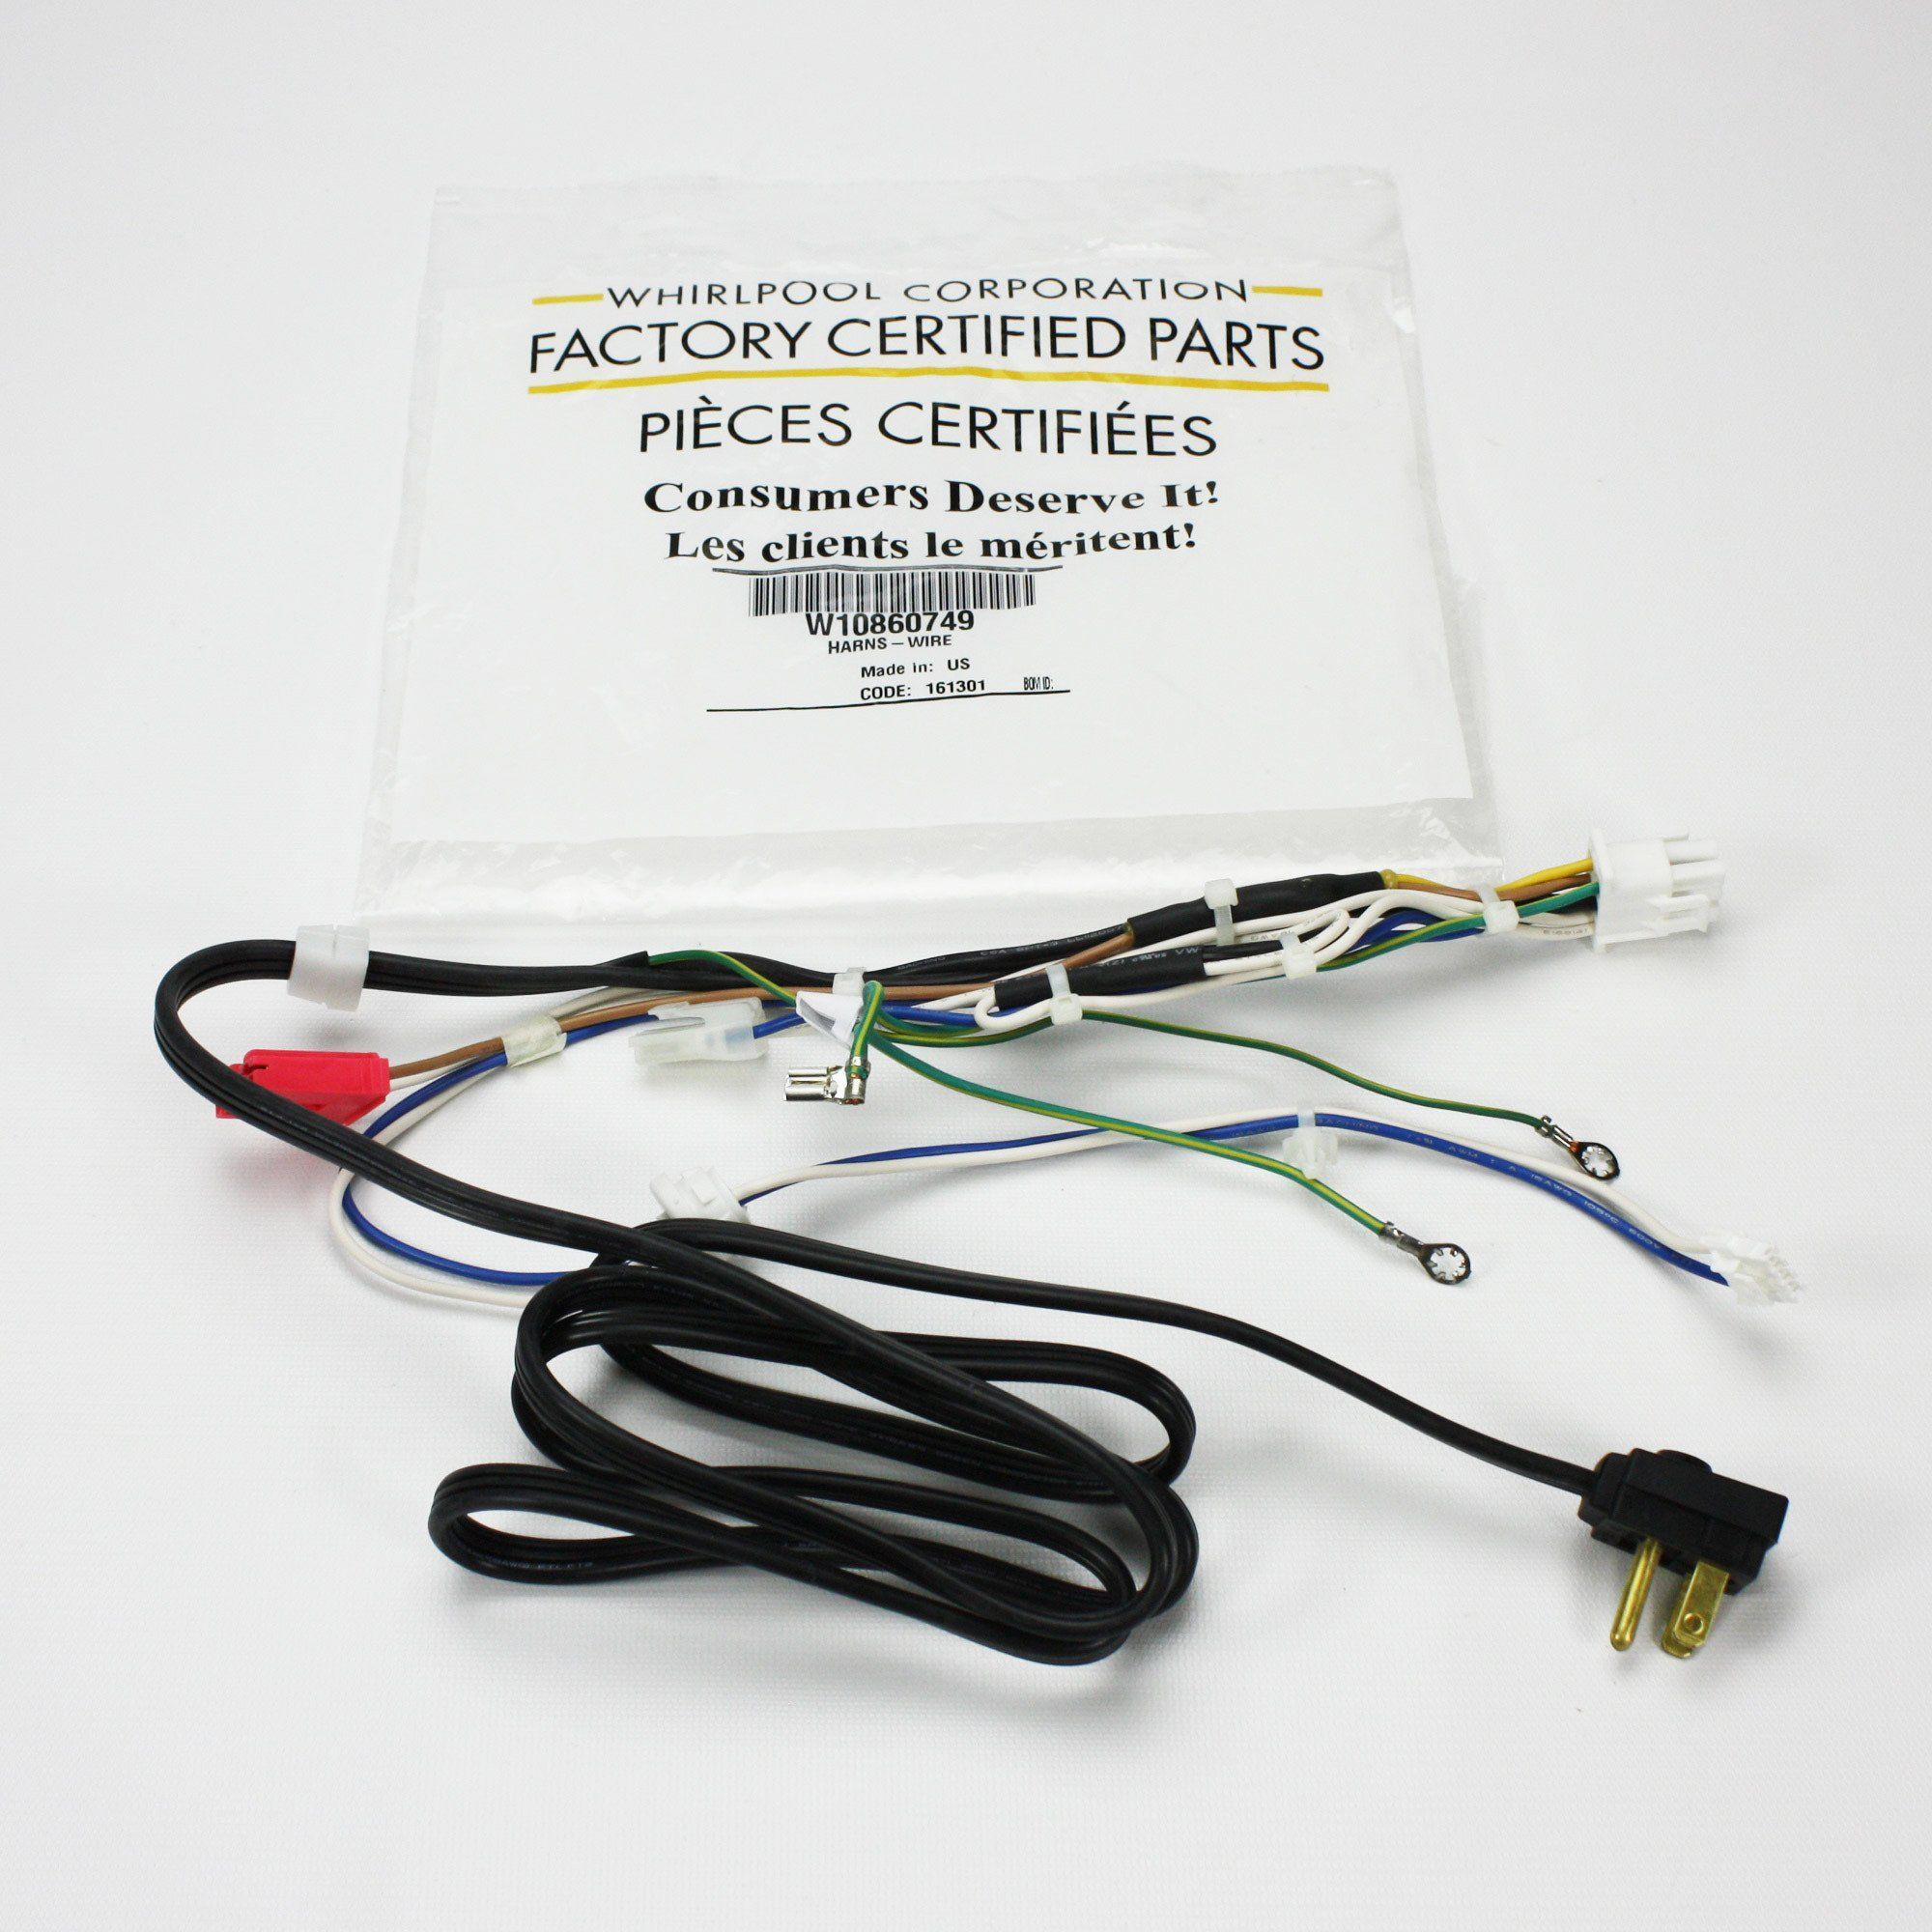 W10860749 Genuine Oem Whirlpool Refrigerator Wire Harness Products Appliance